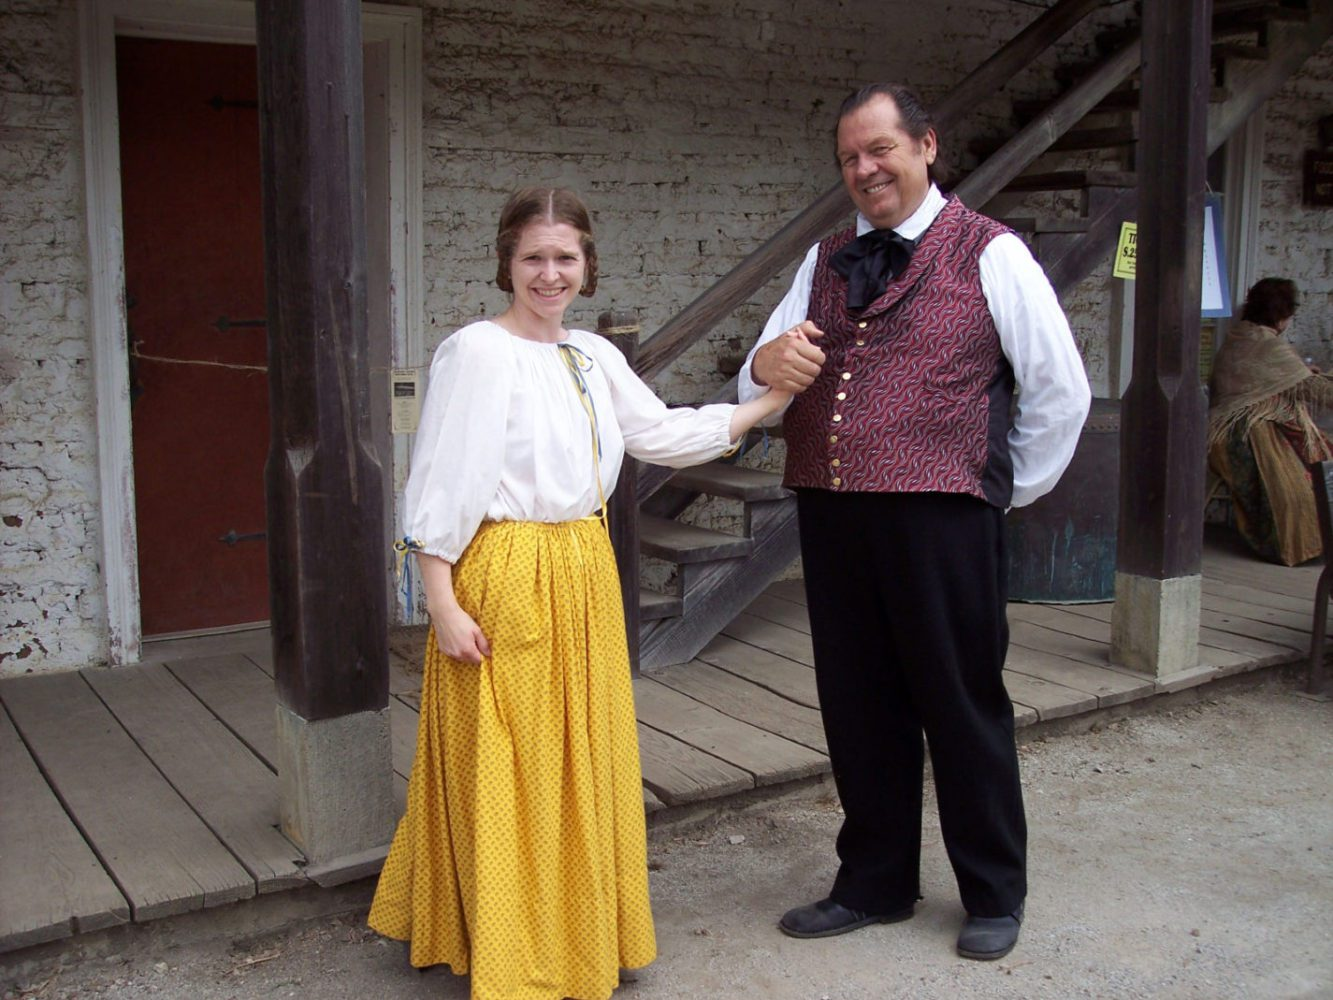 A young woman and man dressed in period costumes at the Sanchez Adobe Rancho Fiesta Day